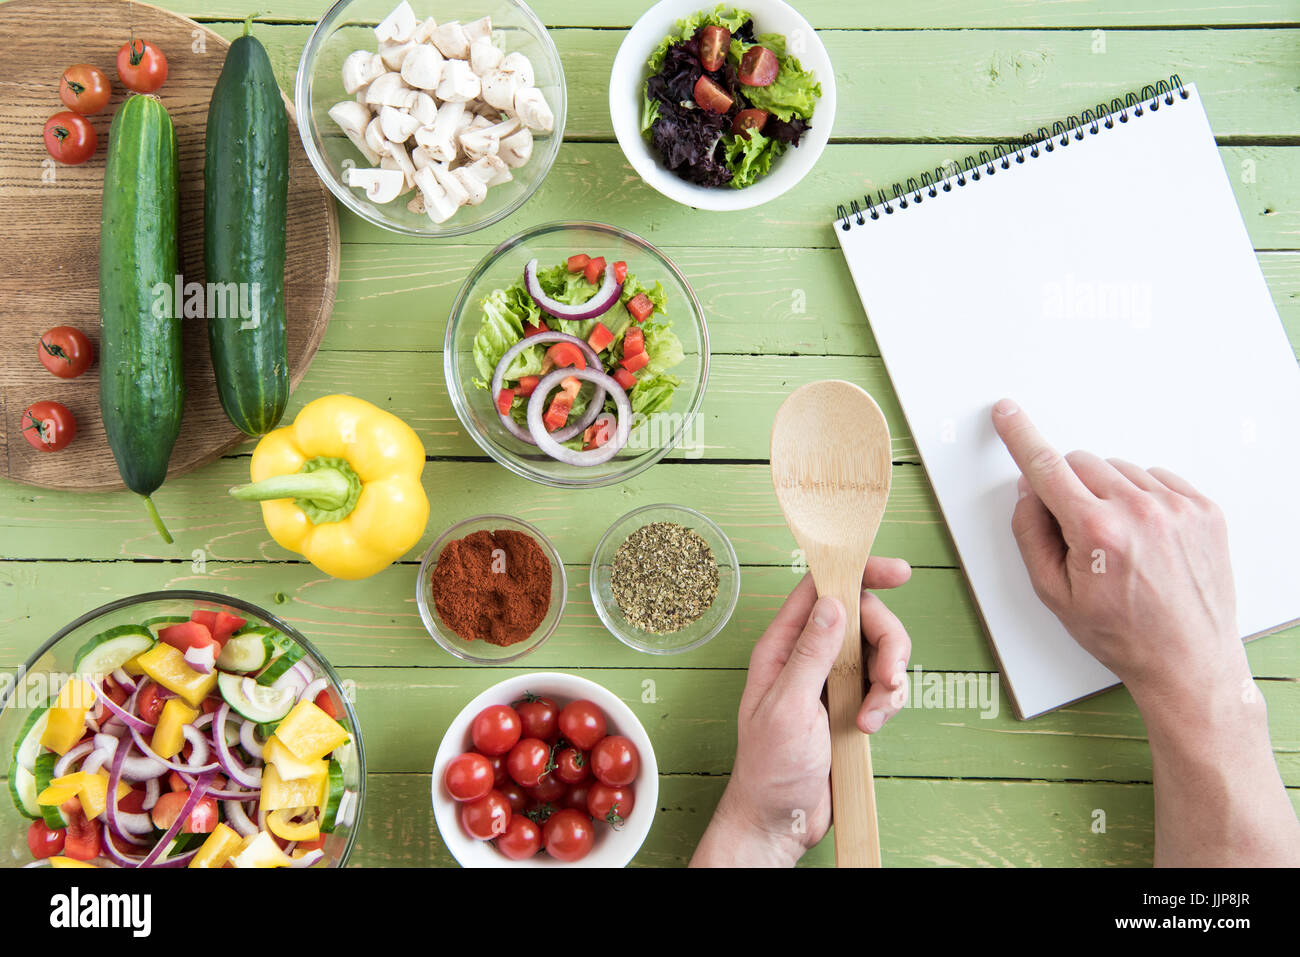 Close-up partial view of person holding wooden spoon and pointing at recipe in cookbook while cooking - Stock Image